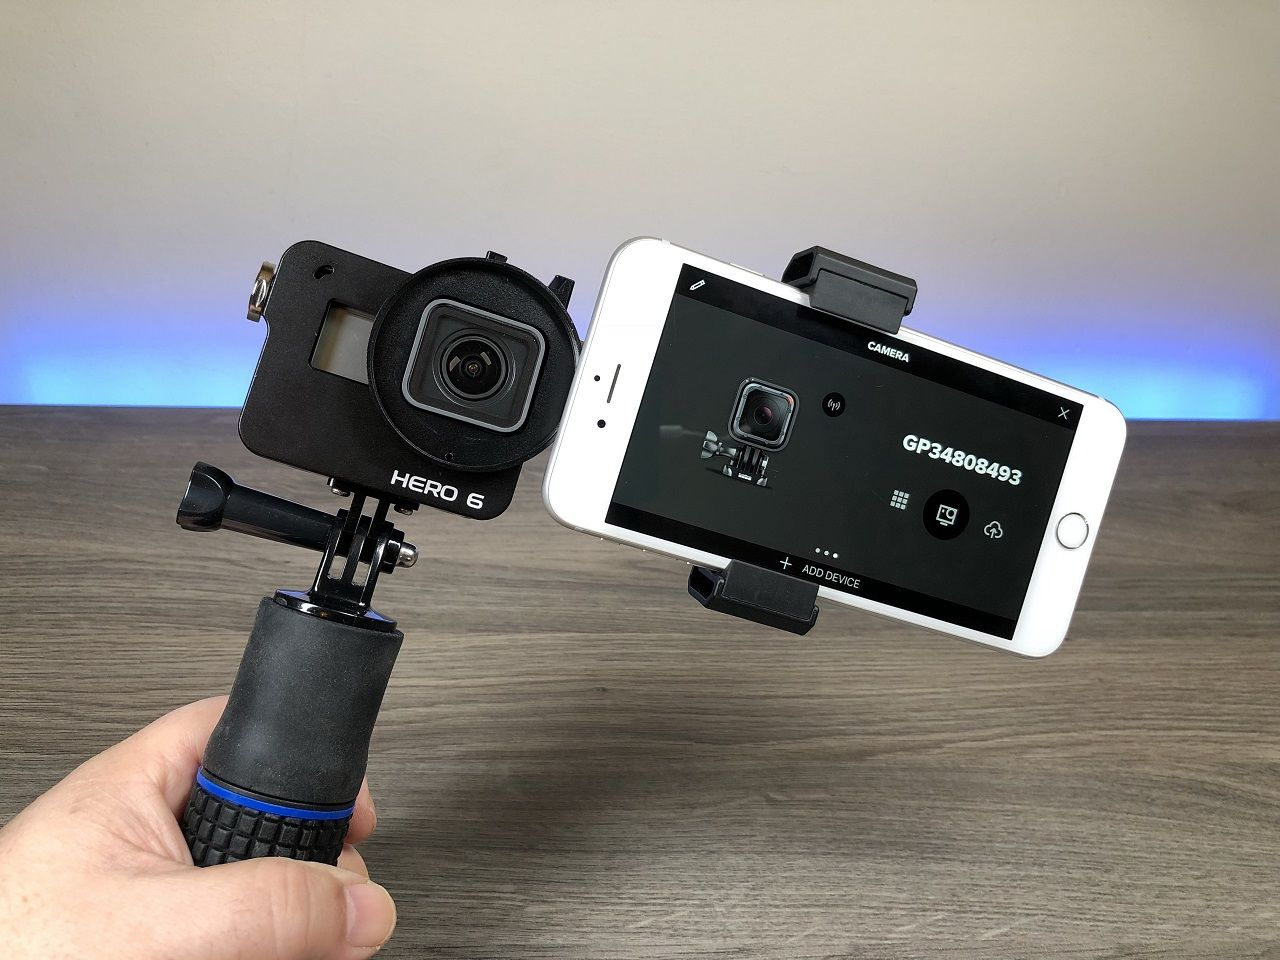 How To Add A DIY Monitor To Your GoPro Hero 5/6 Vlog Setup